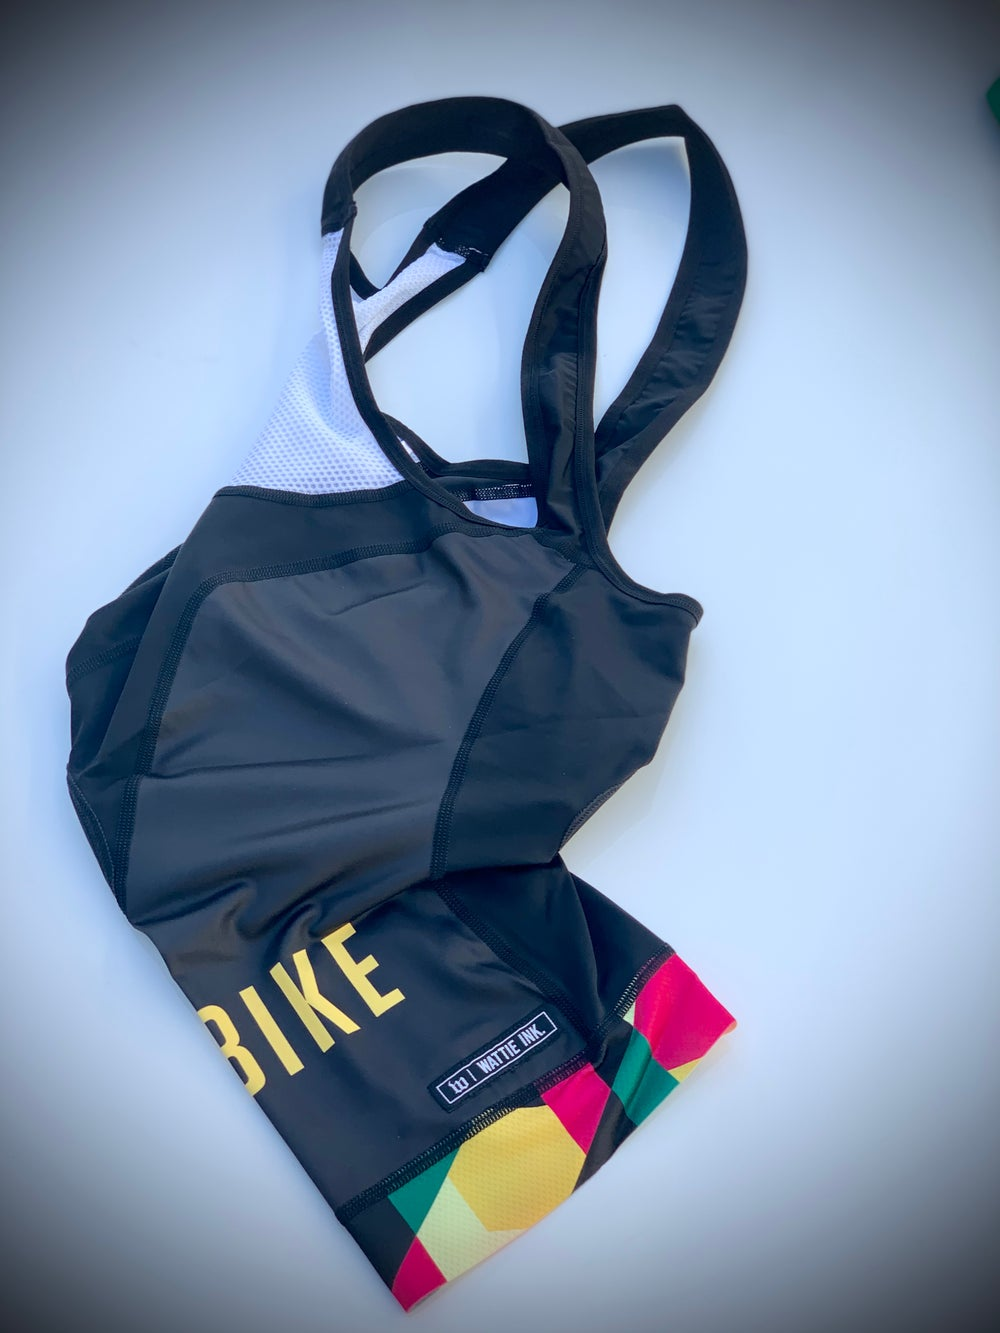 Image of RIDE PROUD Edition Cycling Bib Short - Women's - XSMALL ONLY